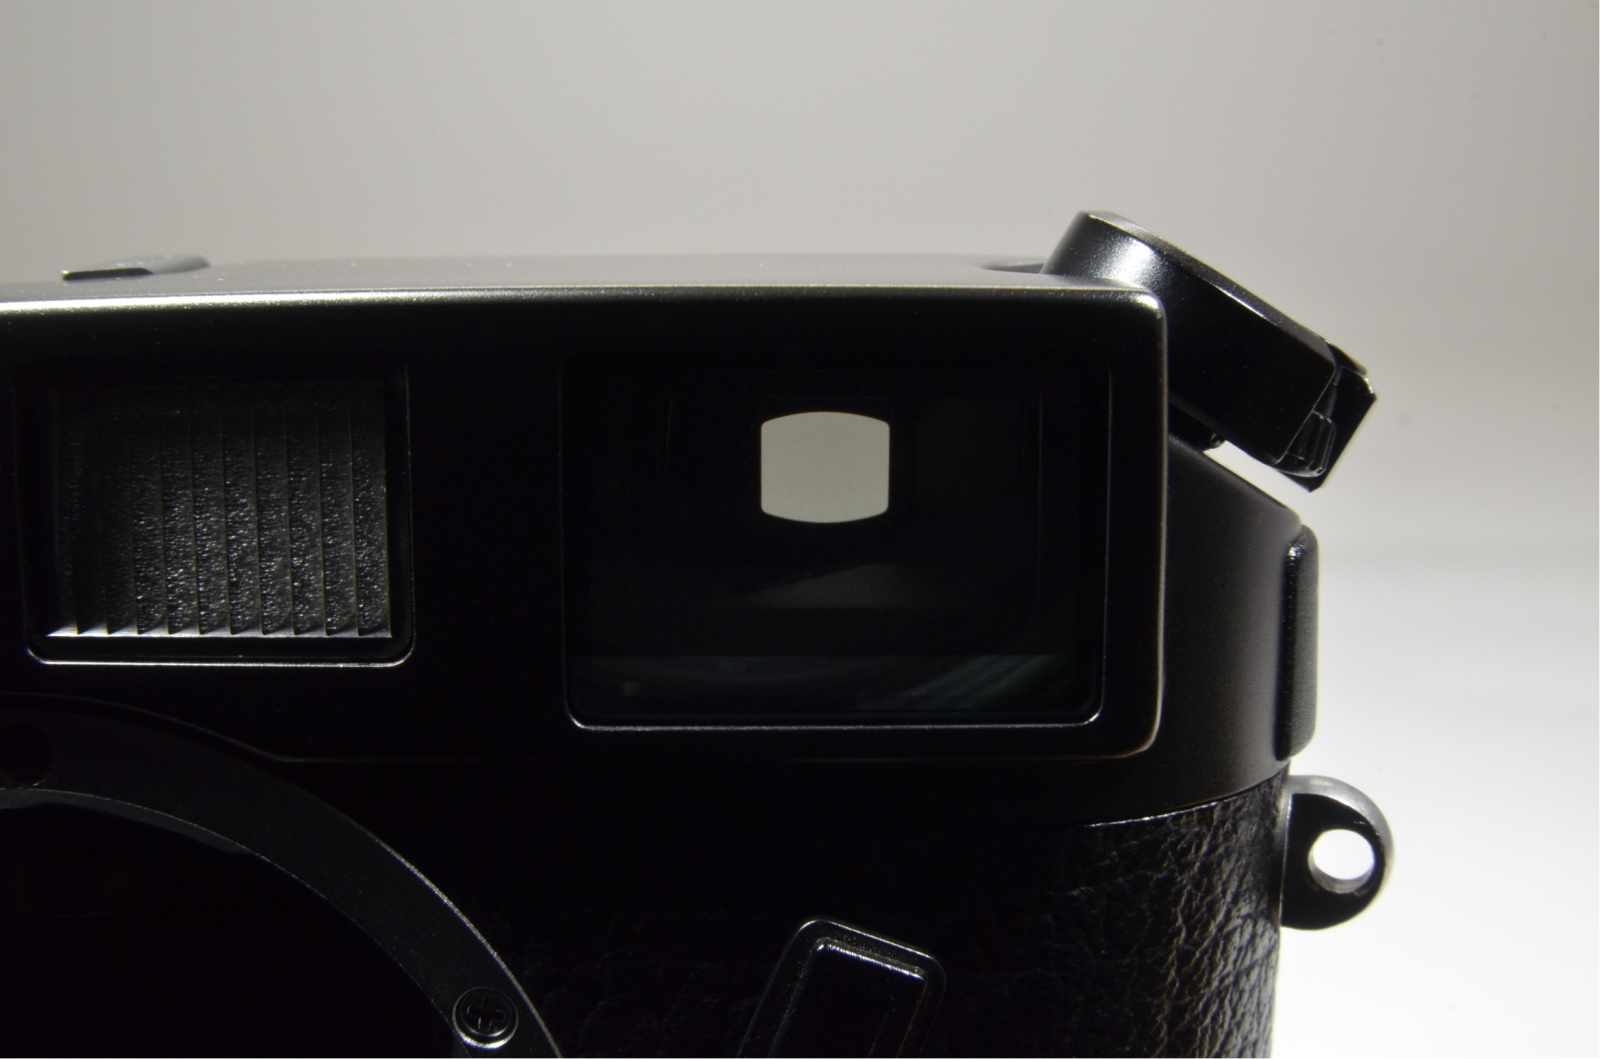 leica m6 black body in boxed 35mm rangefinder film camera